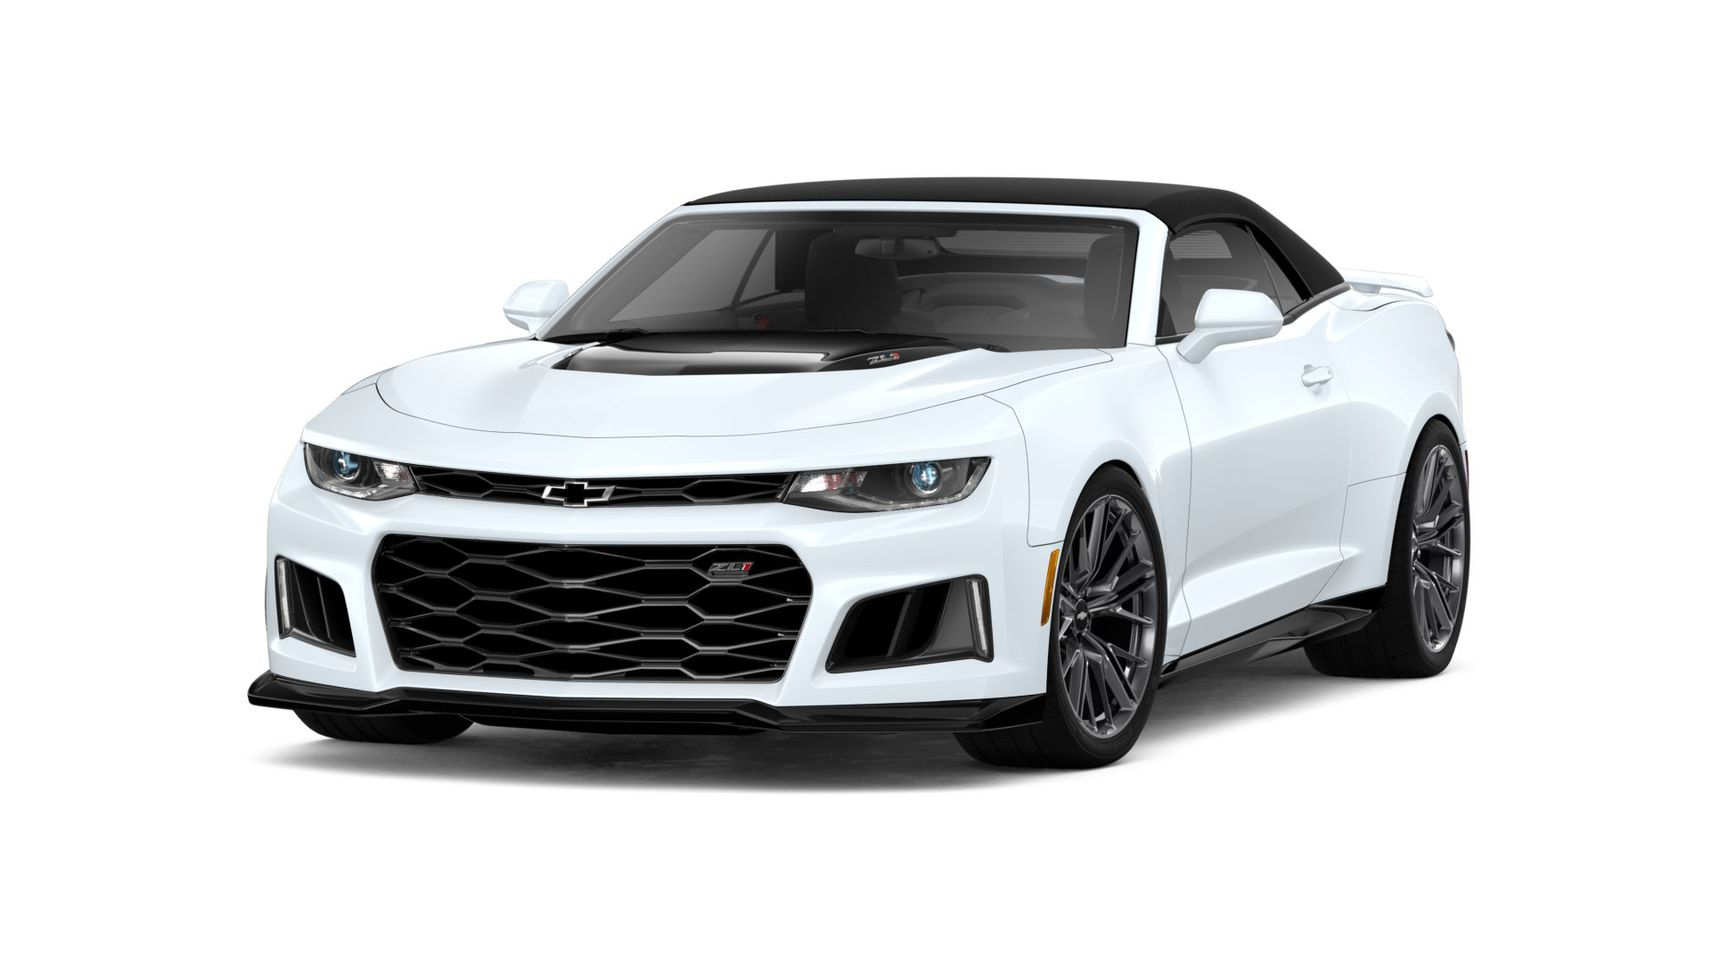 Chevrolet Camaro 2020 ZL1 Convertible 6.2 V8 Supercharged DI Бензин 6 ст. МКПП Задний